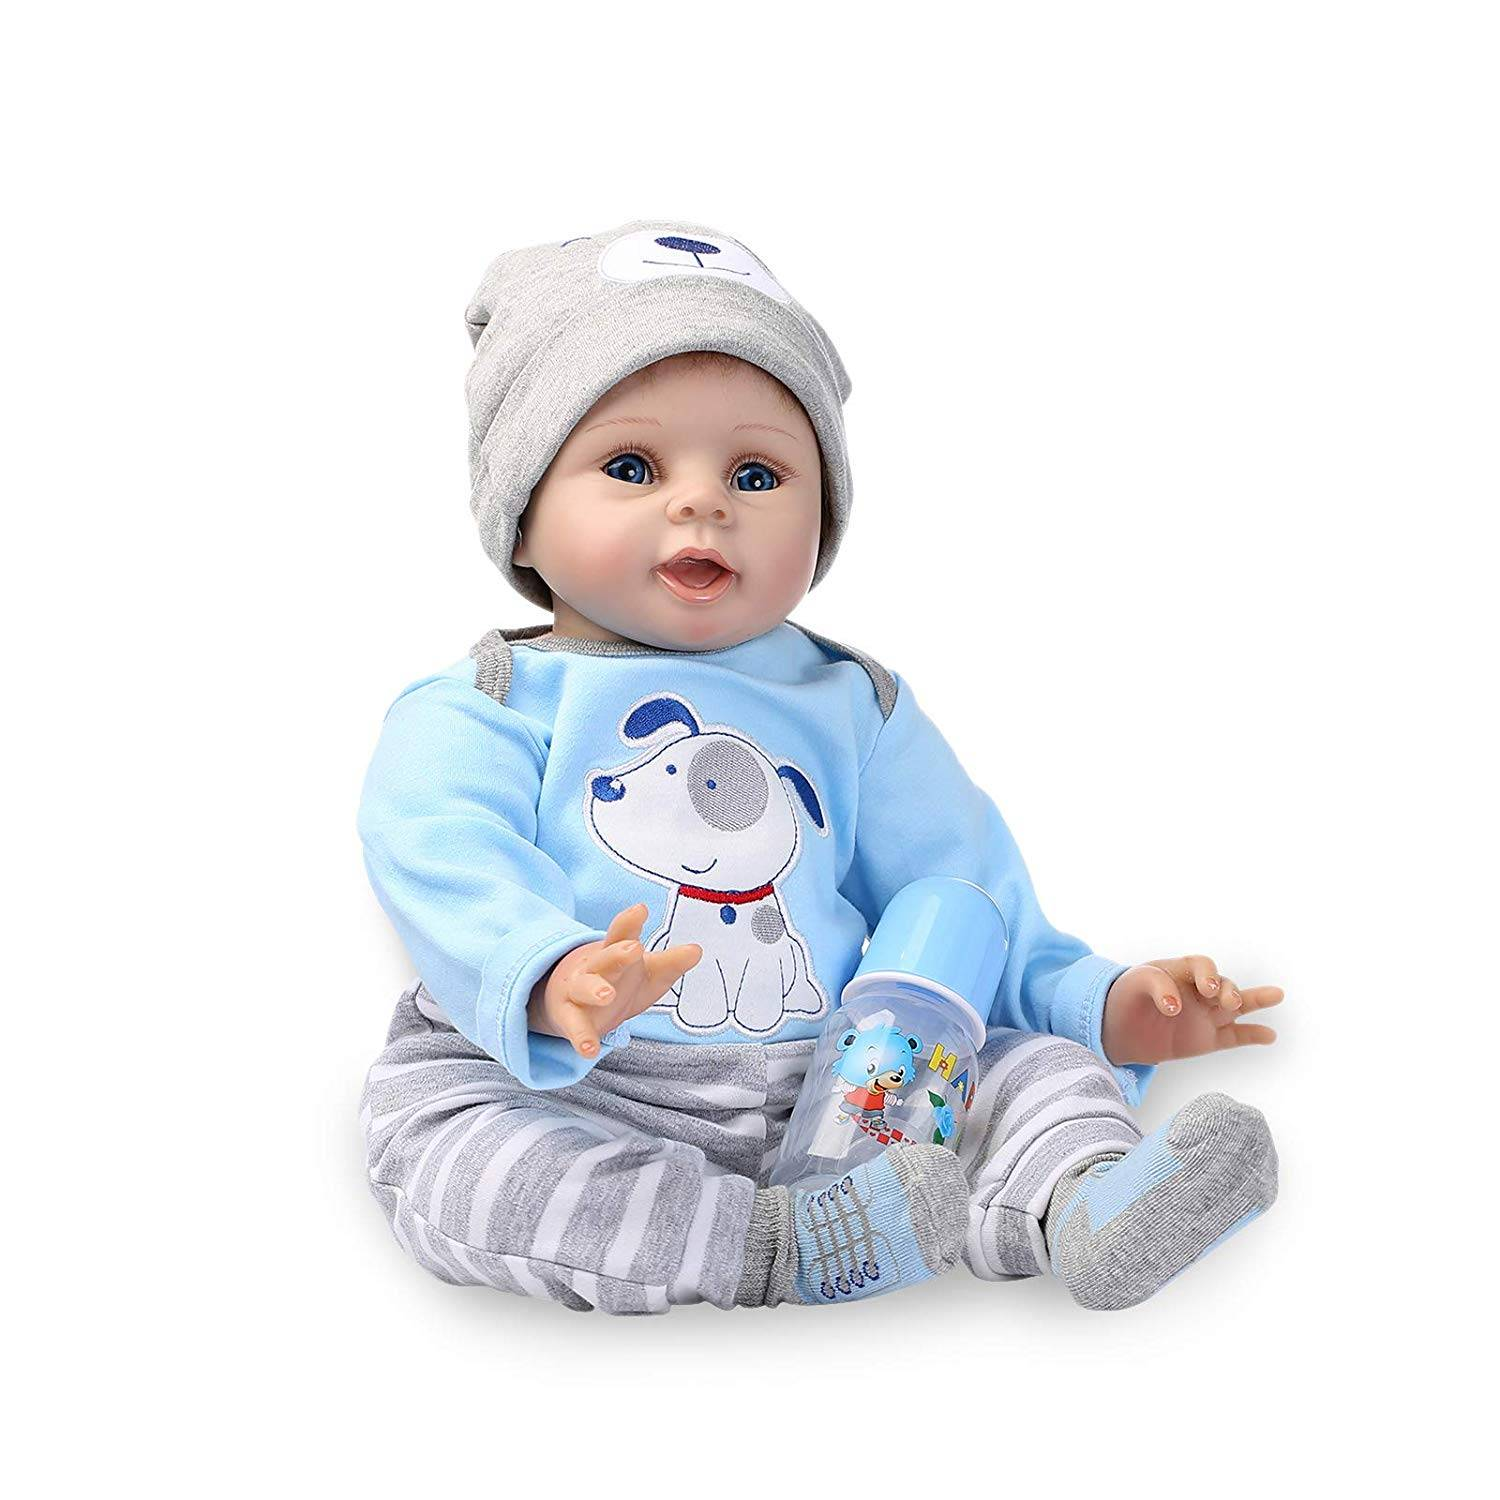 Realistic Baby Dolls Toddlers - Reborn Baby Doll Soft Simulation Silicone Vinyl Cloth Body 22inch 55cm Lifelike Boy Girl Toy  – Geshuo